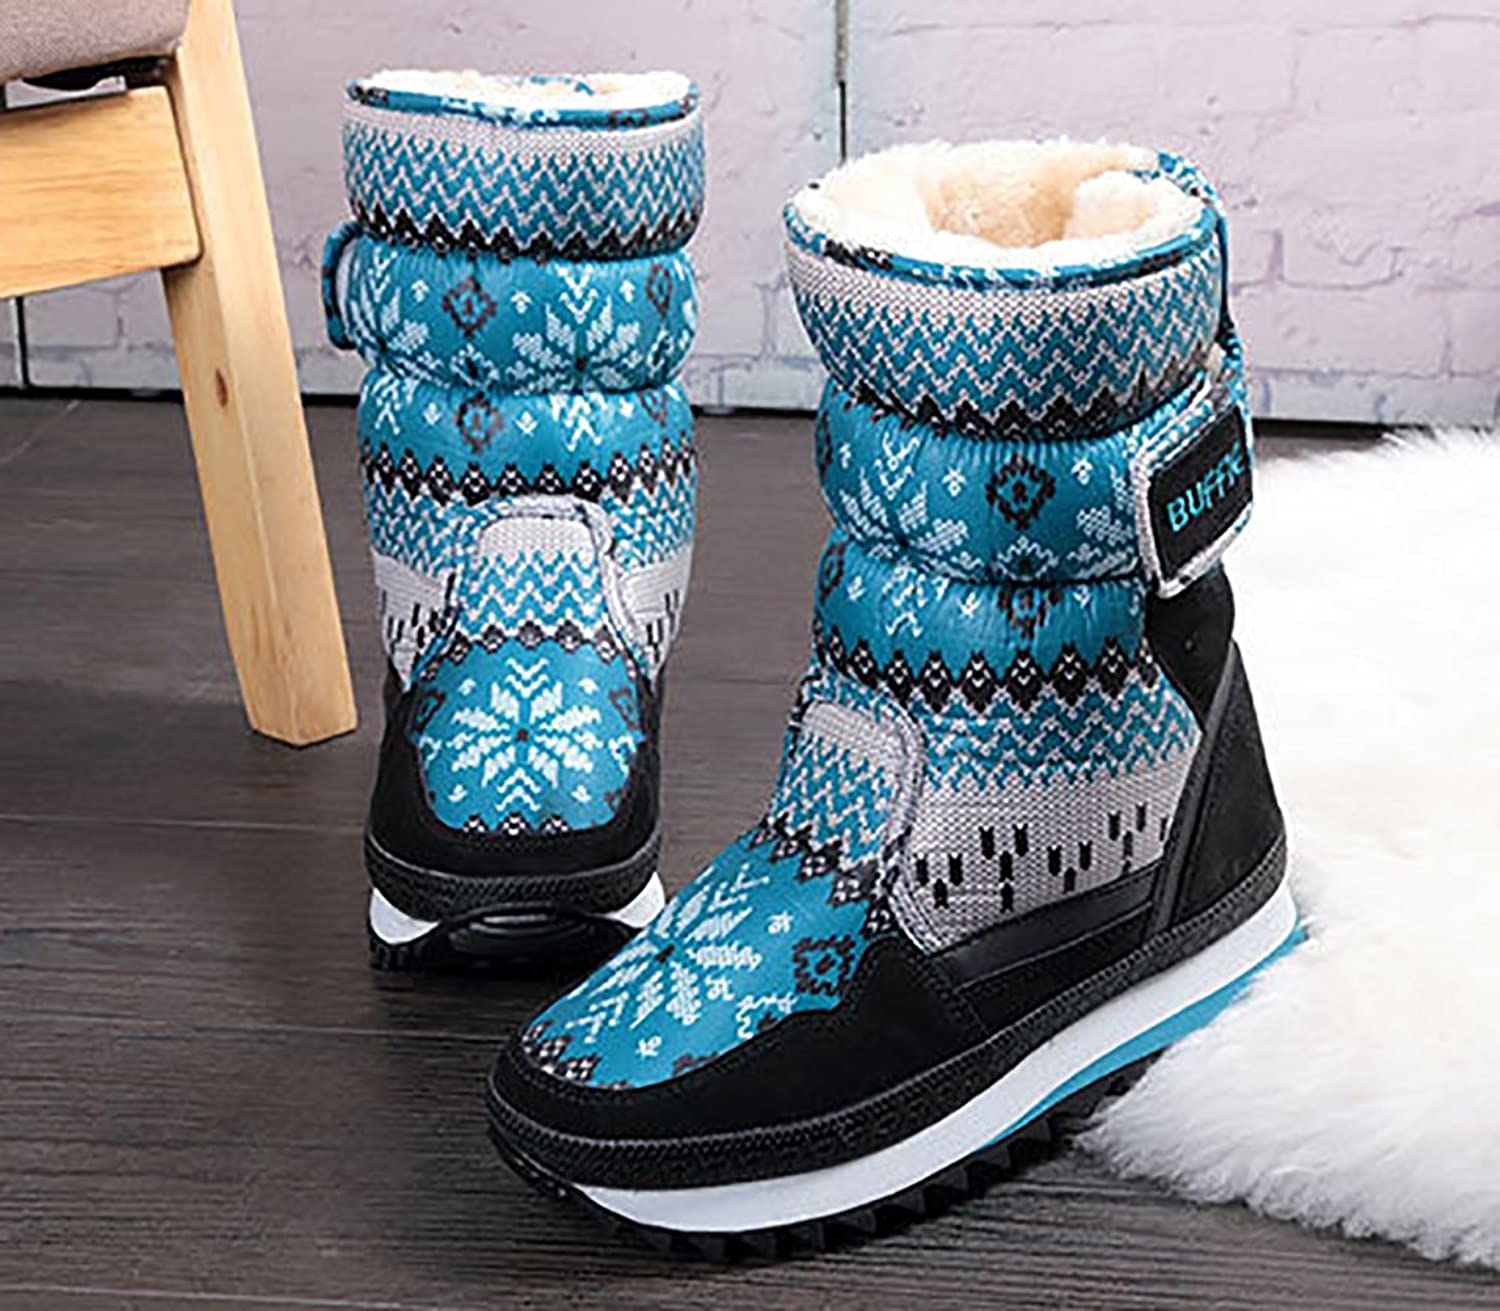 Faux Fur Lined Winter Snow Boots Family Themed Cold Weather Boots for Women  & Toddler & Kids: Amazon.co.uk: Shoes & Bags